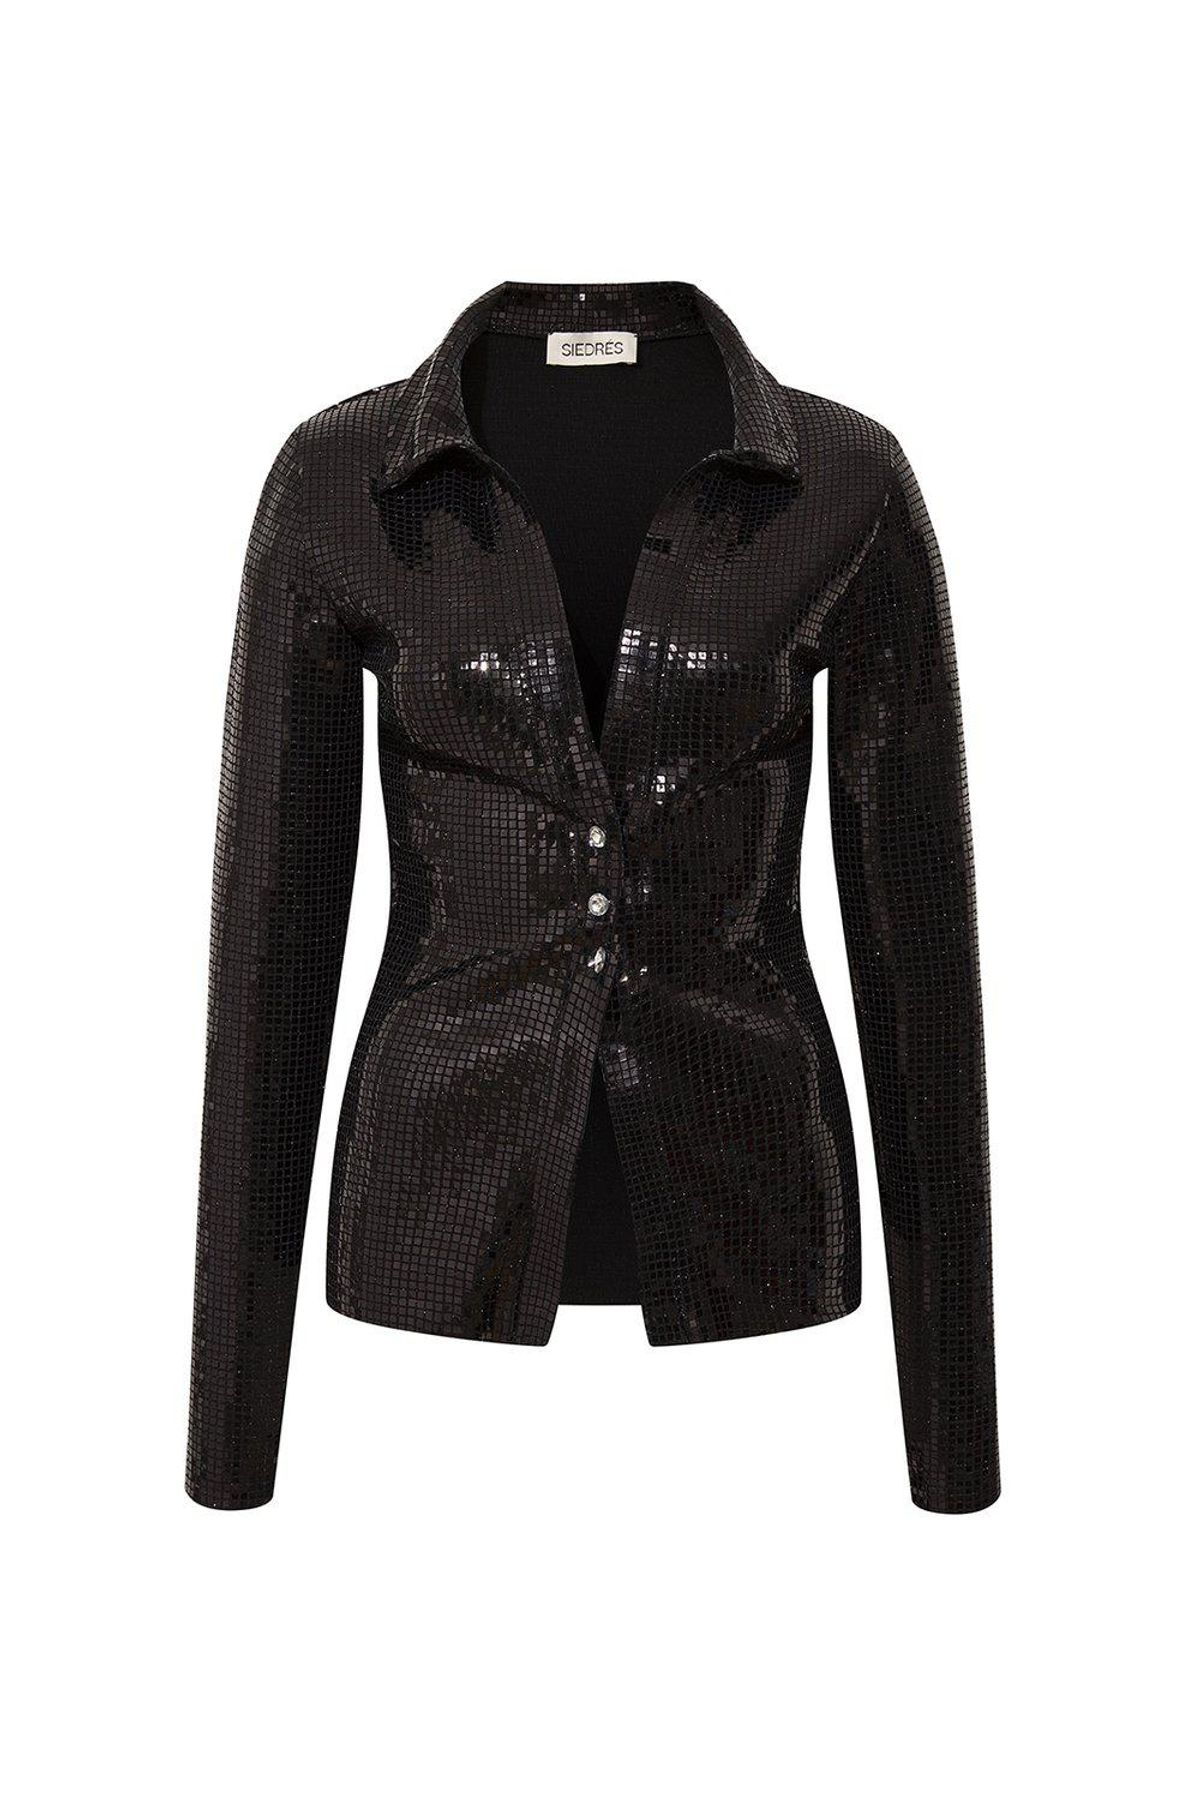 siedres issa black fitted sequined shirt